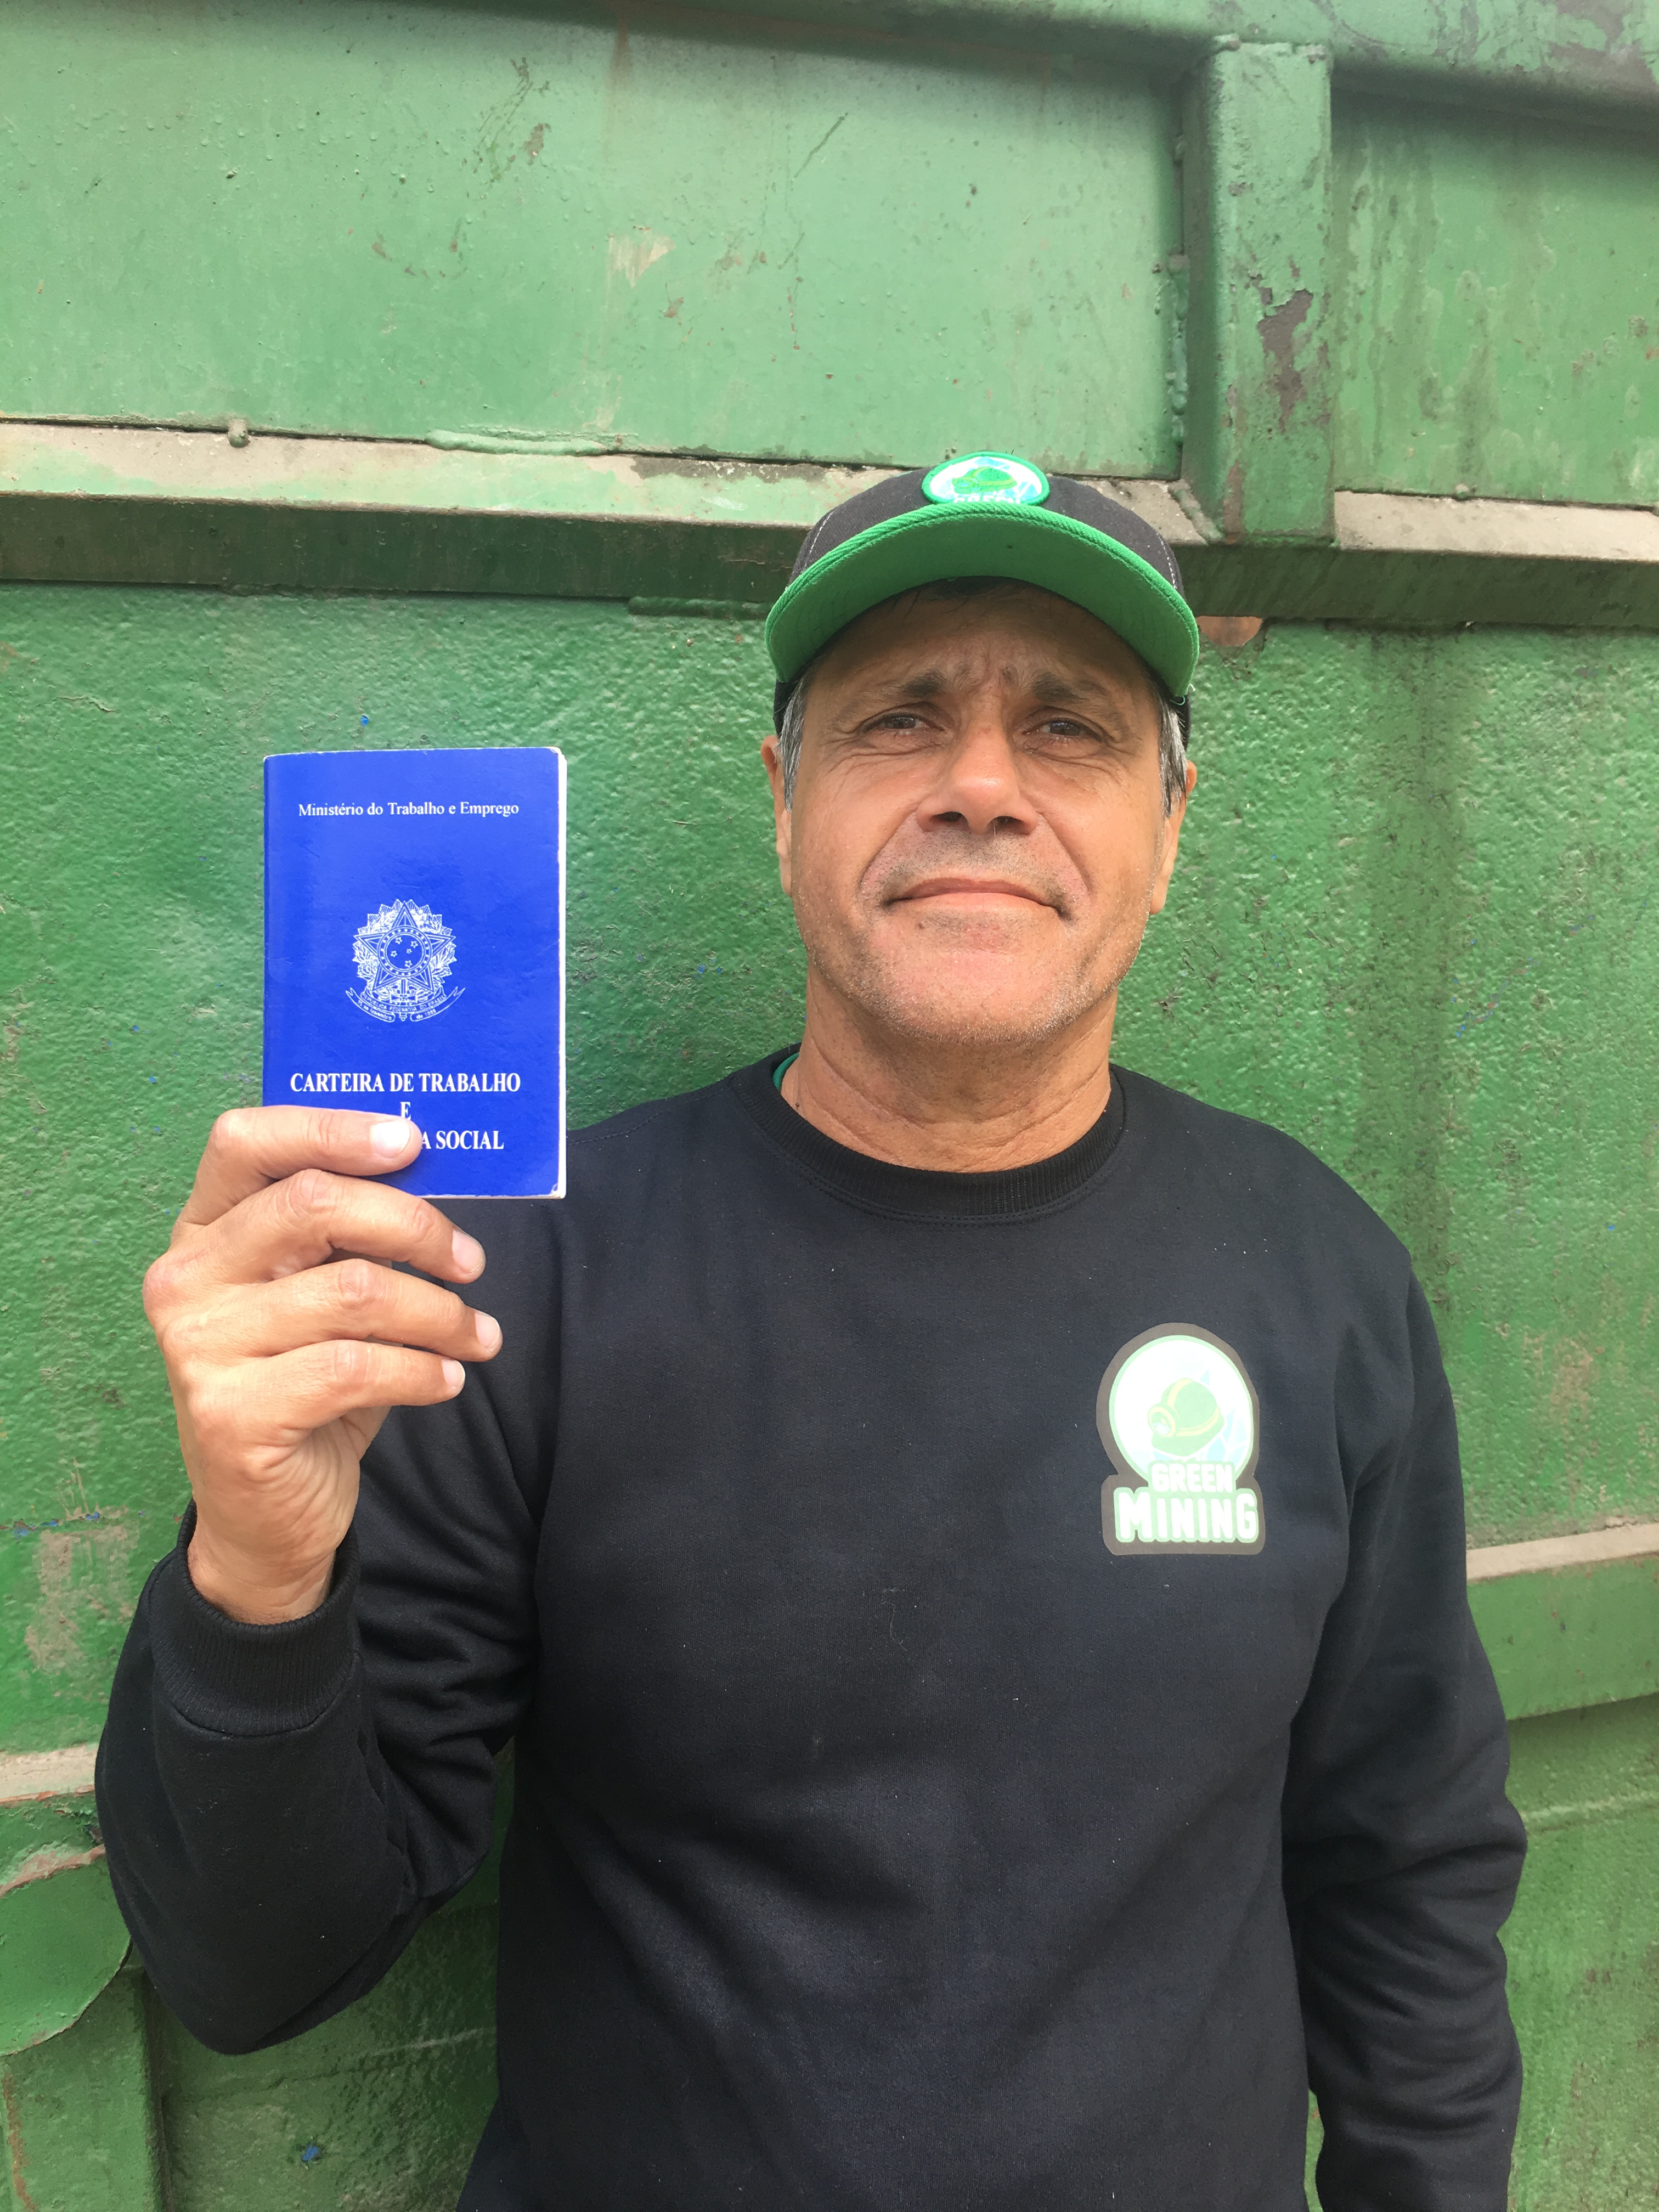 Green Mining values the experience of <strong>Humberto das Neves Cabral</strong>, who worked with reverse logistics in supermarkets.